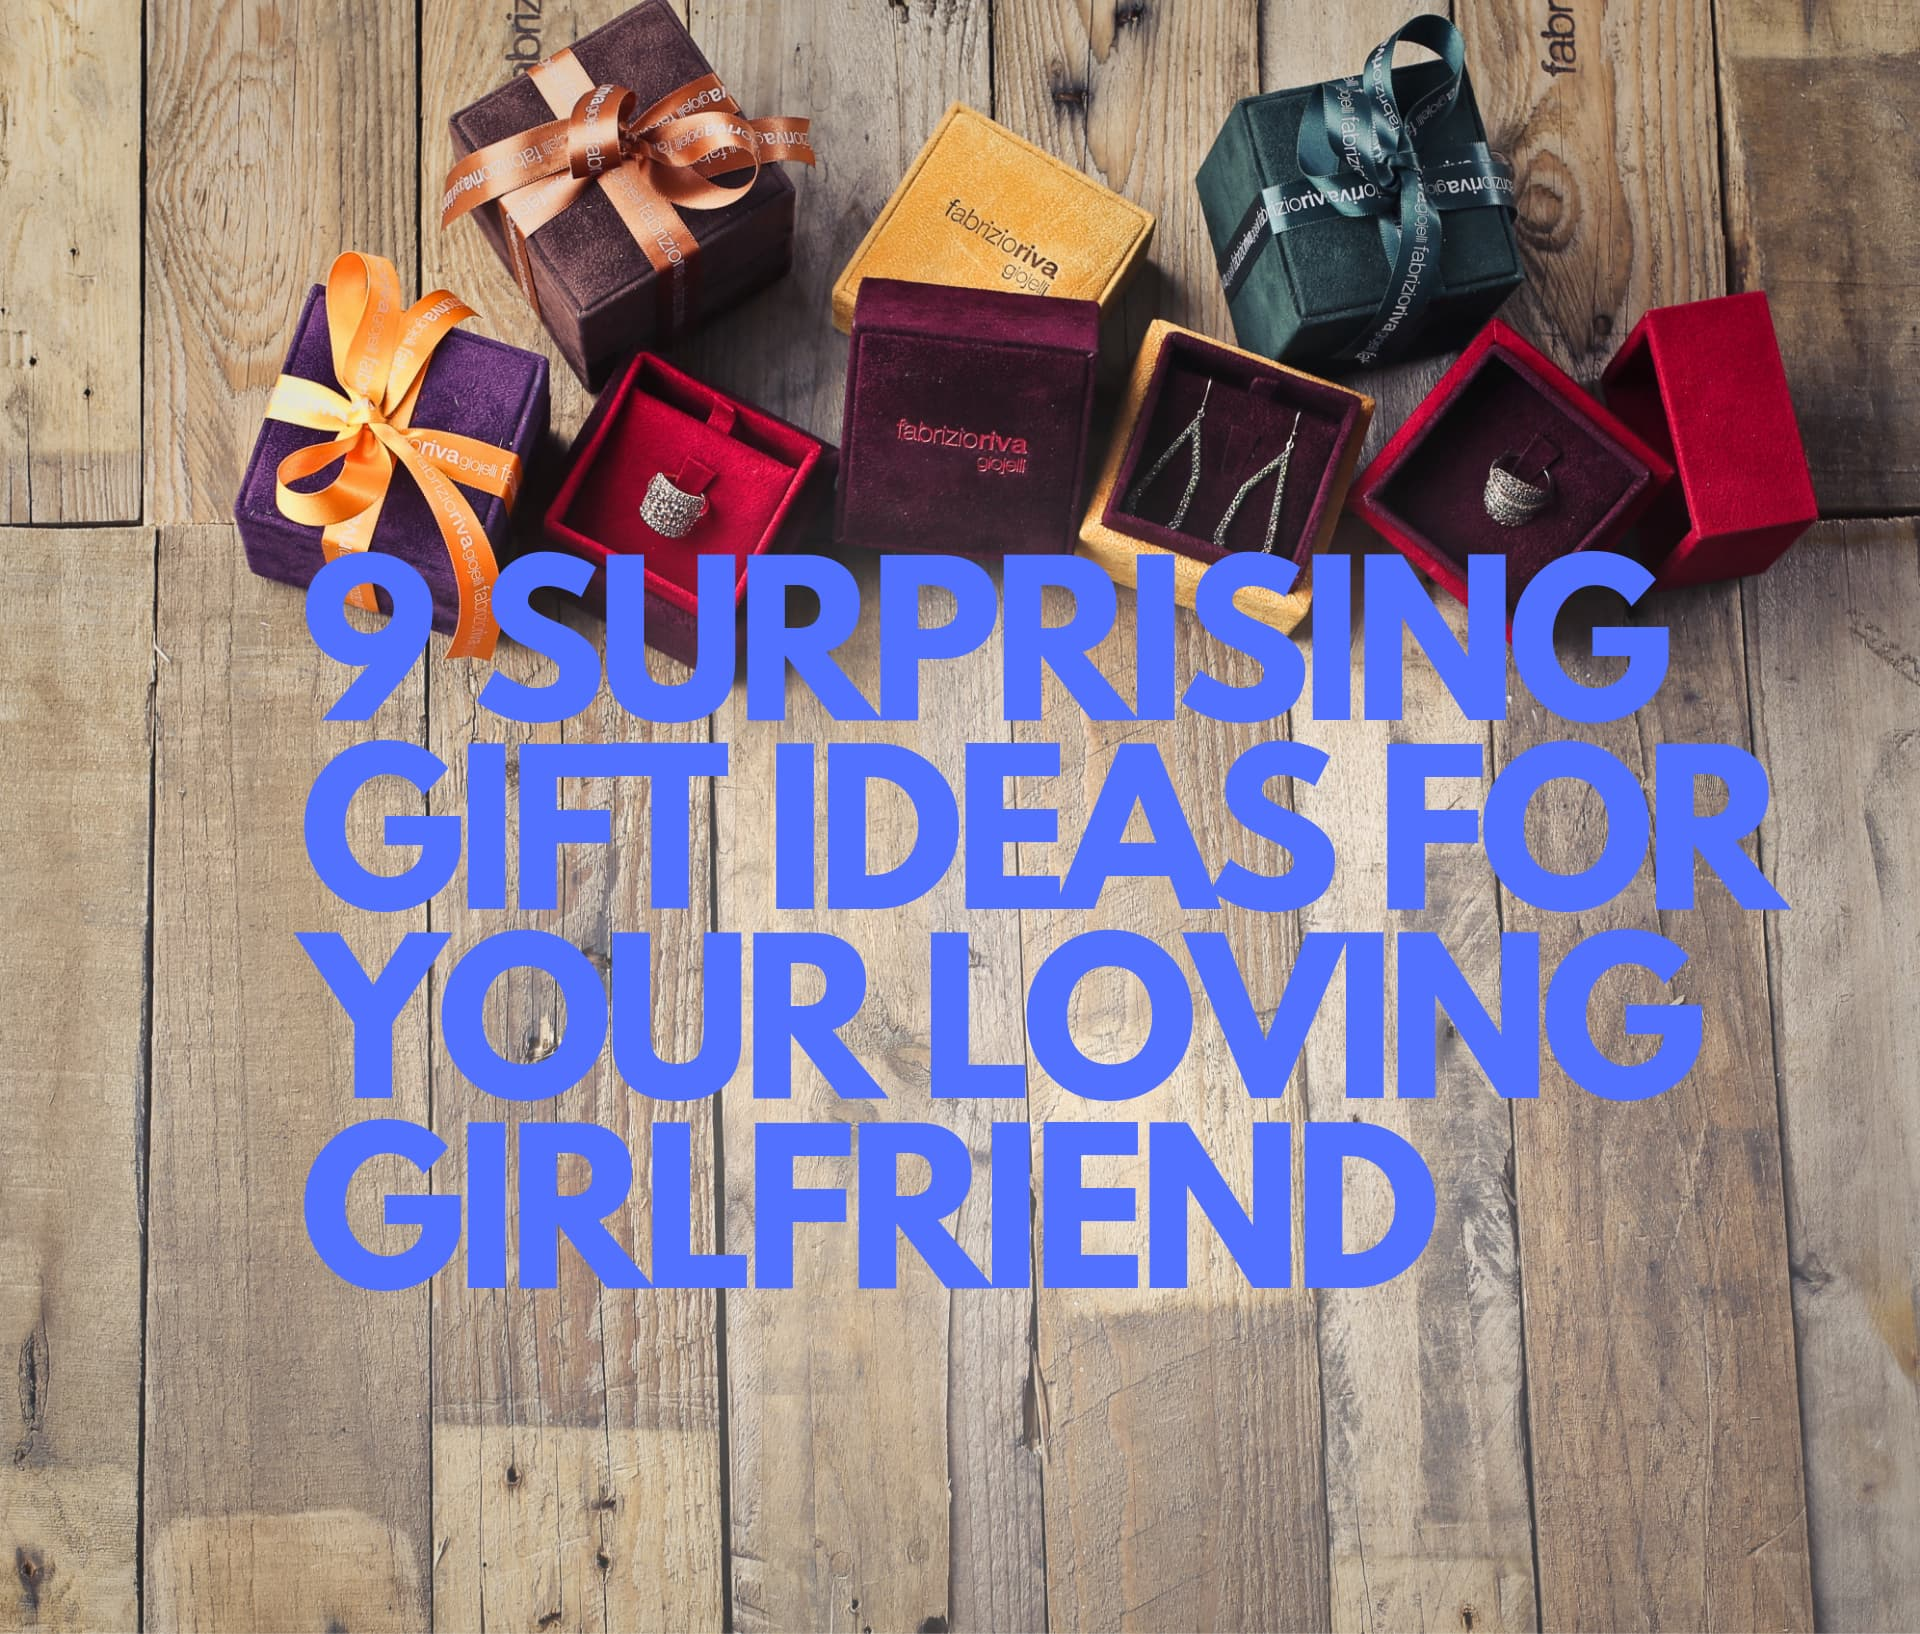 9 Surprising Gift Ideas for Your Loving Girlfriend